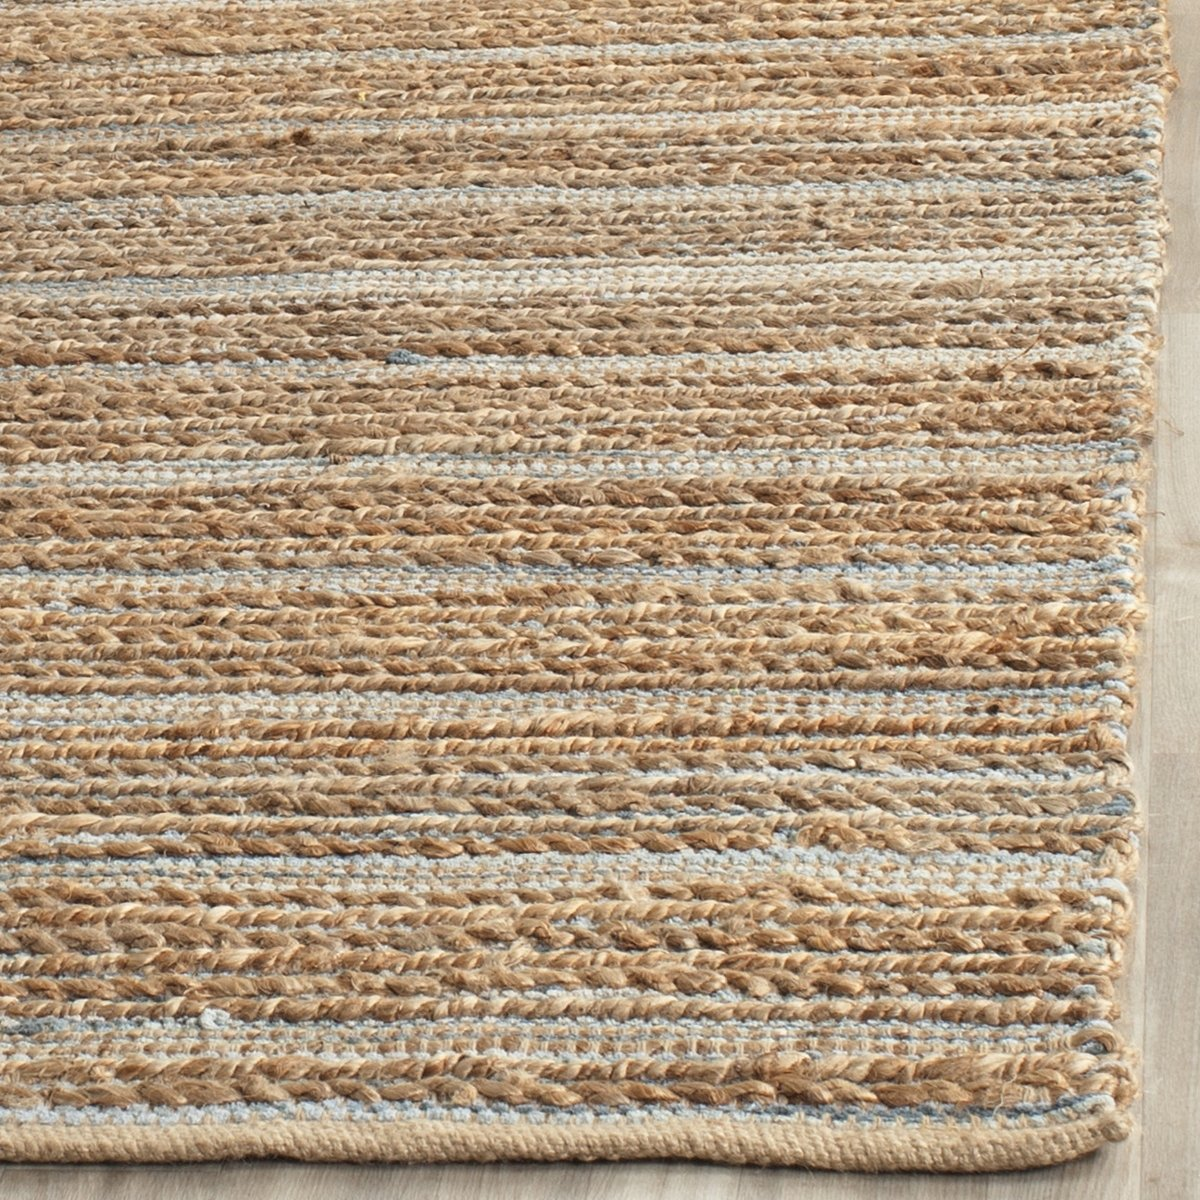 Safavieh Cape Cod Collection CAP851B Hand Woven Blue Jute and Cotton Area Rug (2' x 3')